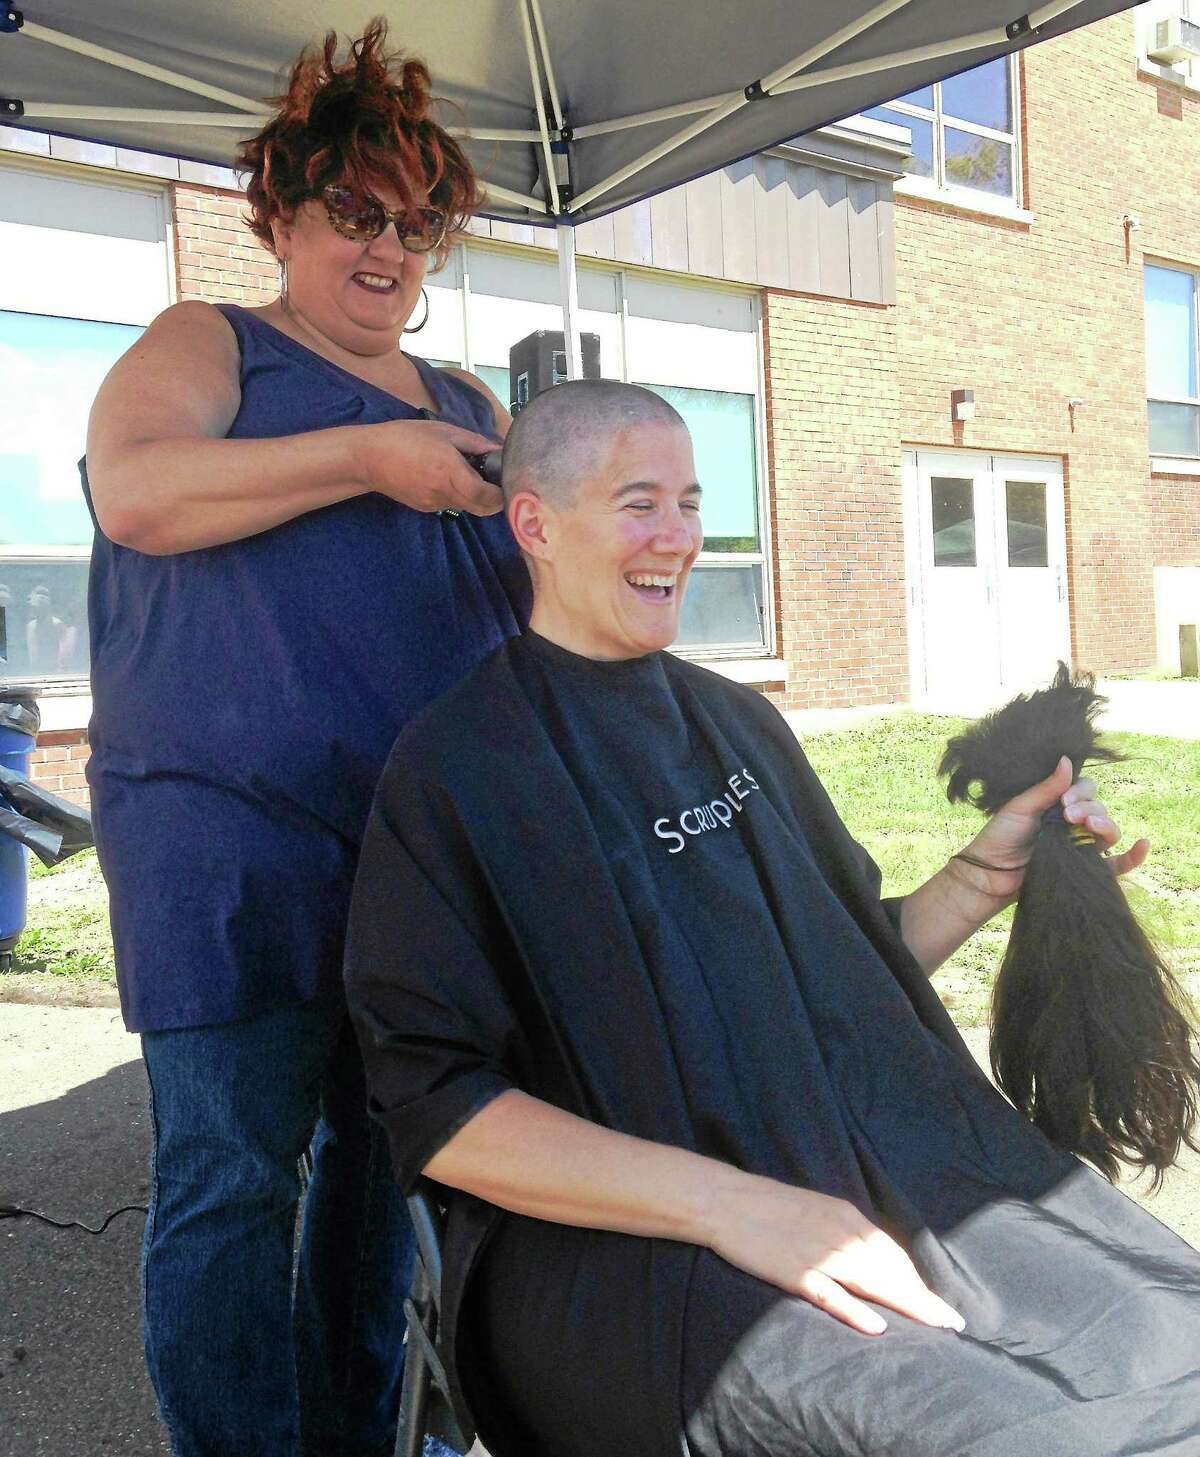 Joanne Poffenberger, a West Haven High School science teacher, holds the hair that stylist Teddi McKenna, of Teddi & Archell a Salon in West Haven, shaved off her head at a previous Westie Day of Hope event at West Haven High School.